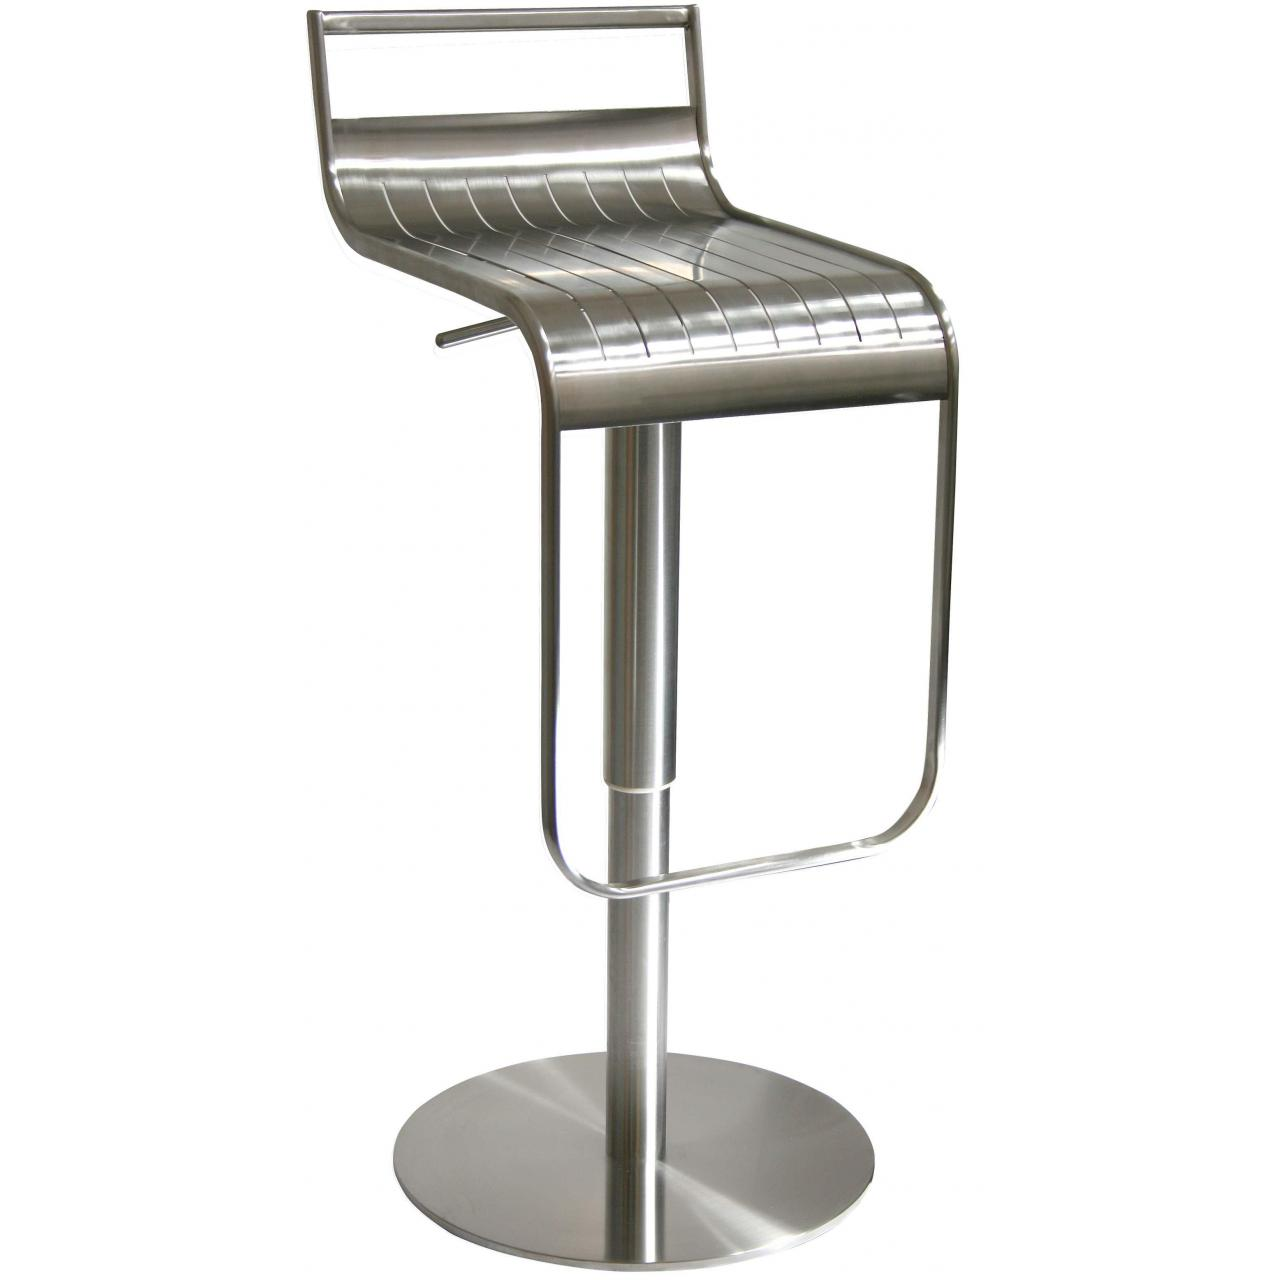 China Bar Stools BSSS1 Stainless Steel Bar Stool on sale